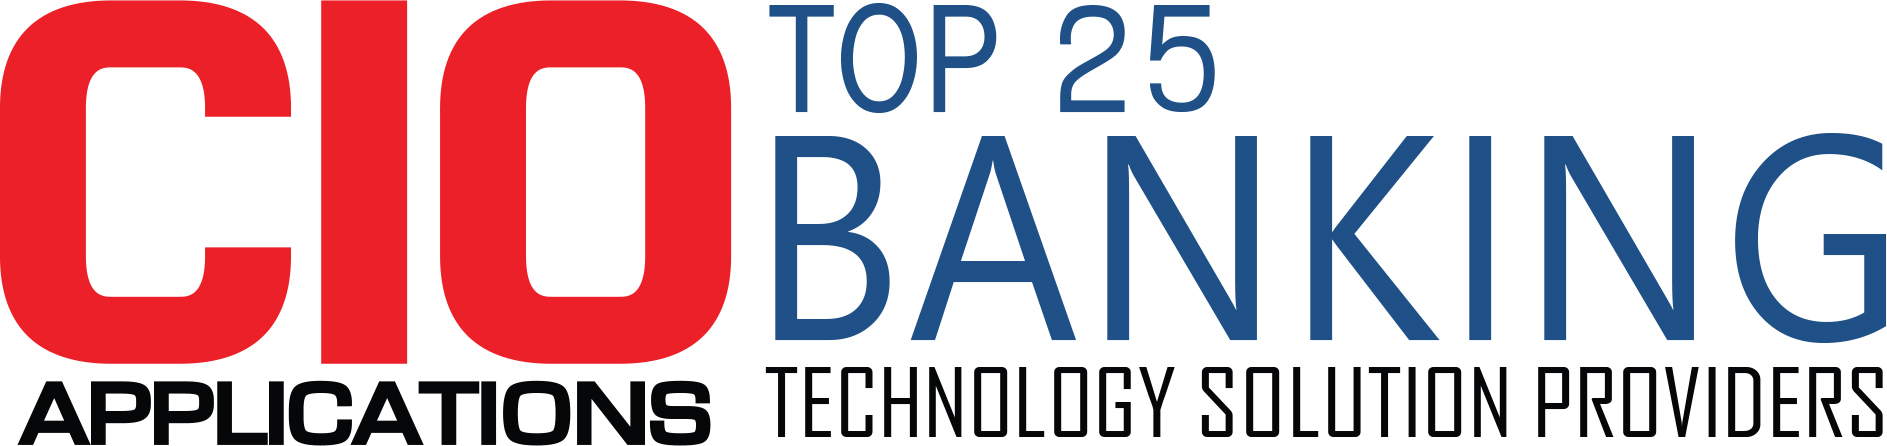 Top Banking Technology Solution Companies